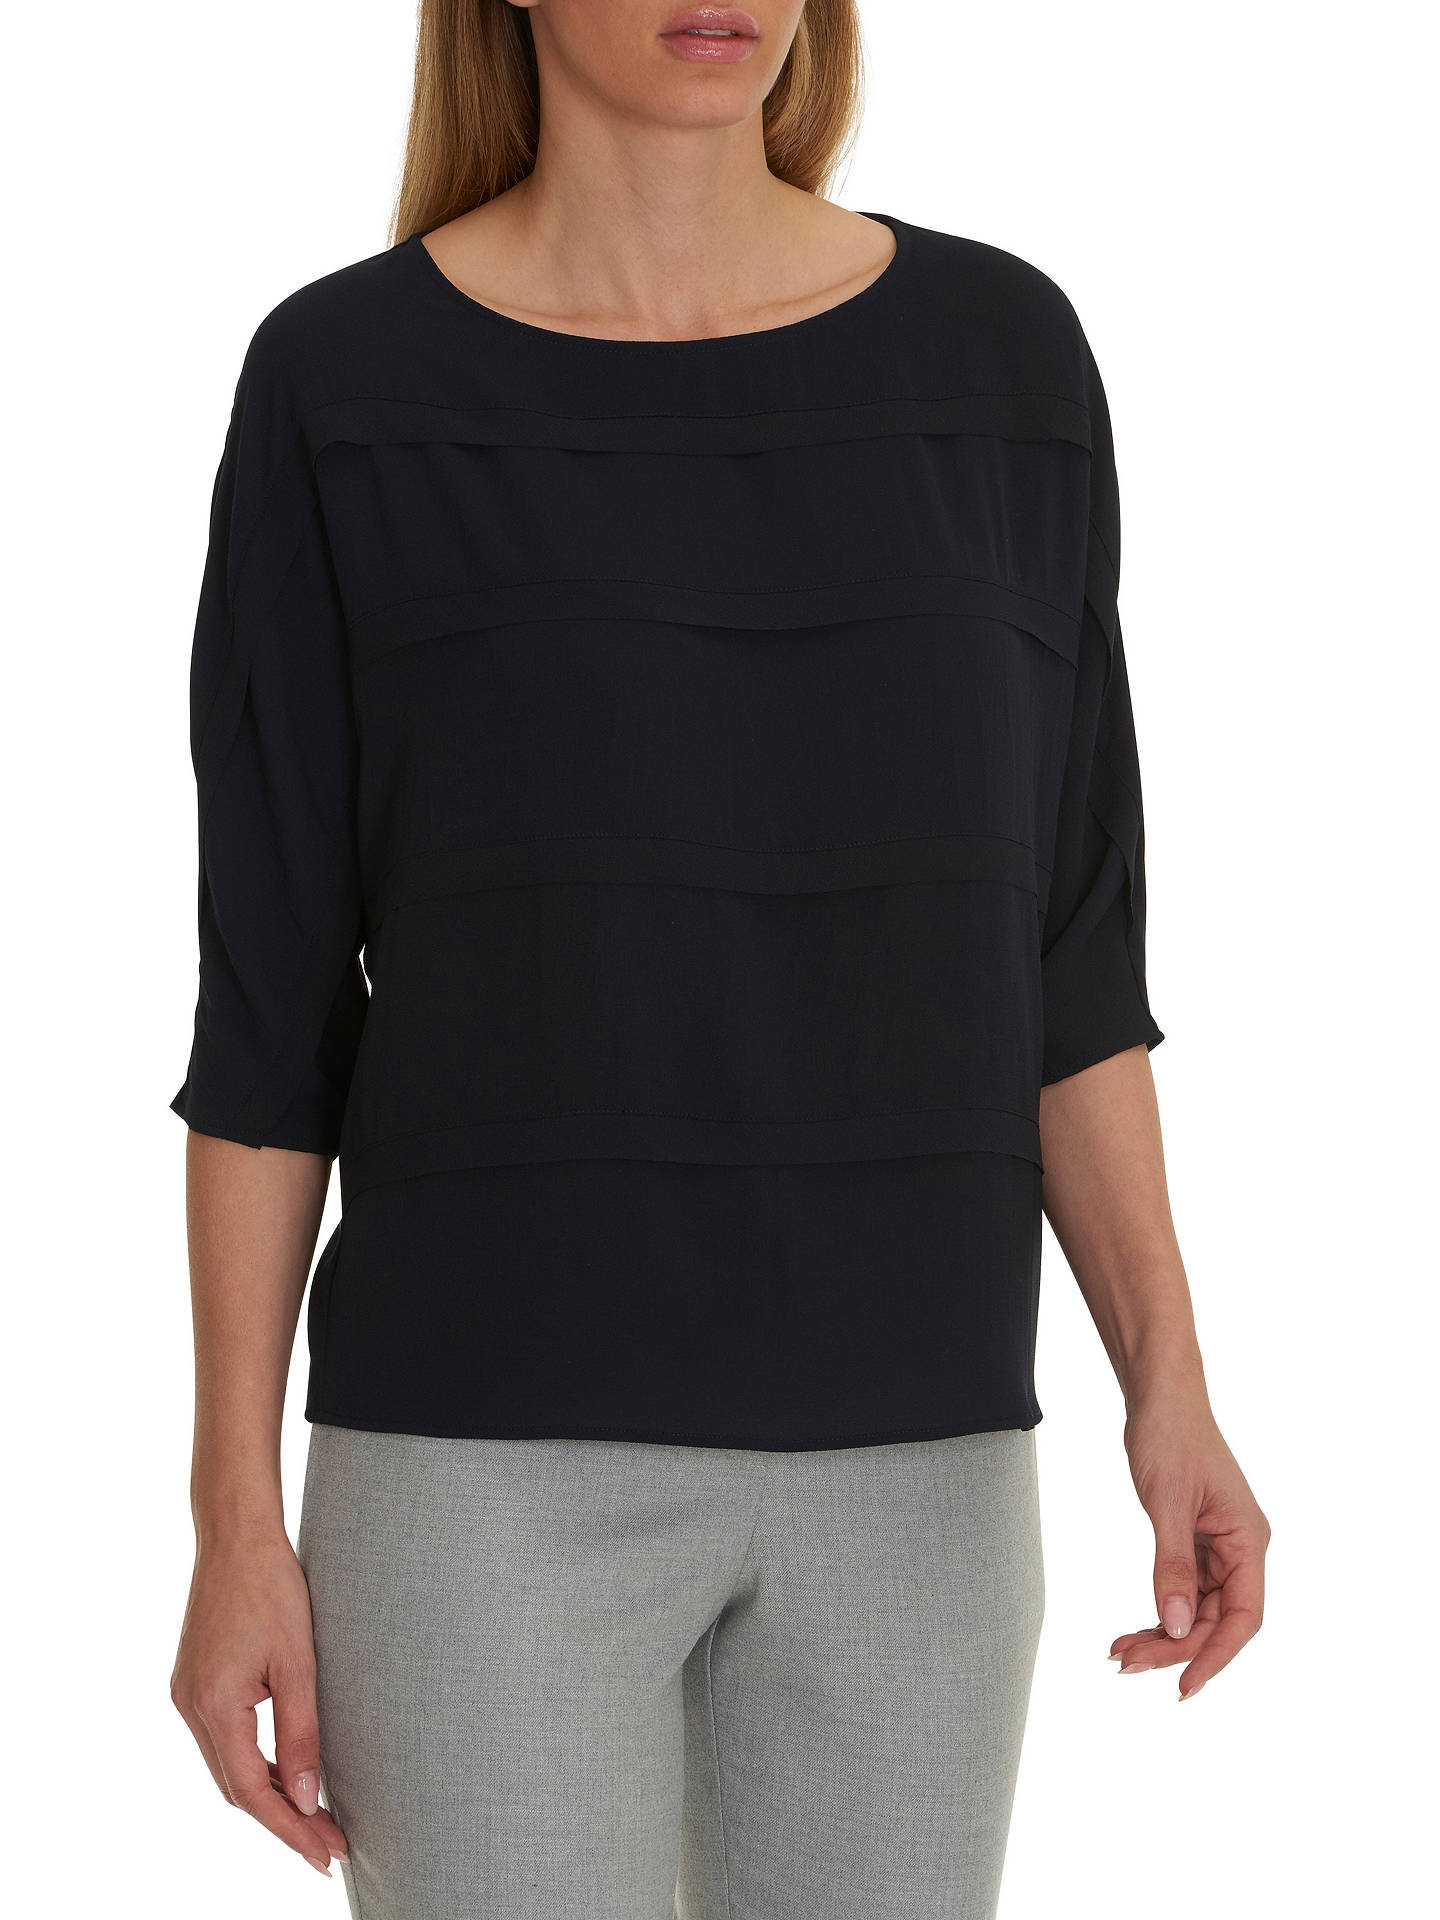 BuyBetty & Co. Crepe Jersey Blouse, Mood Blue, 10 Online at johnlewis.com